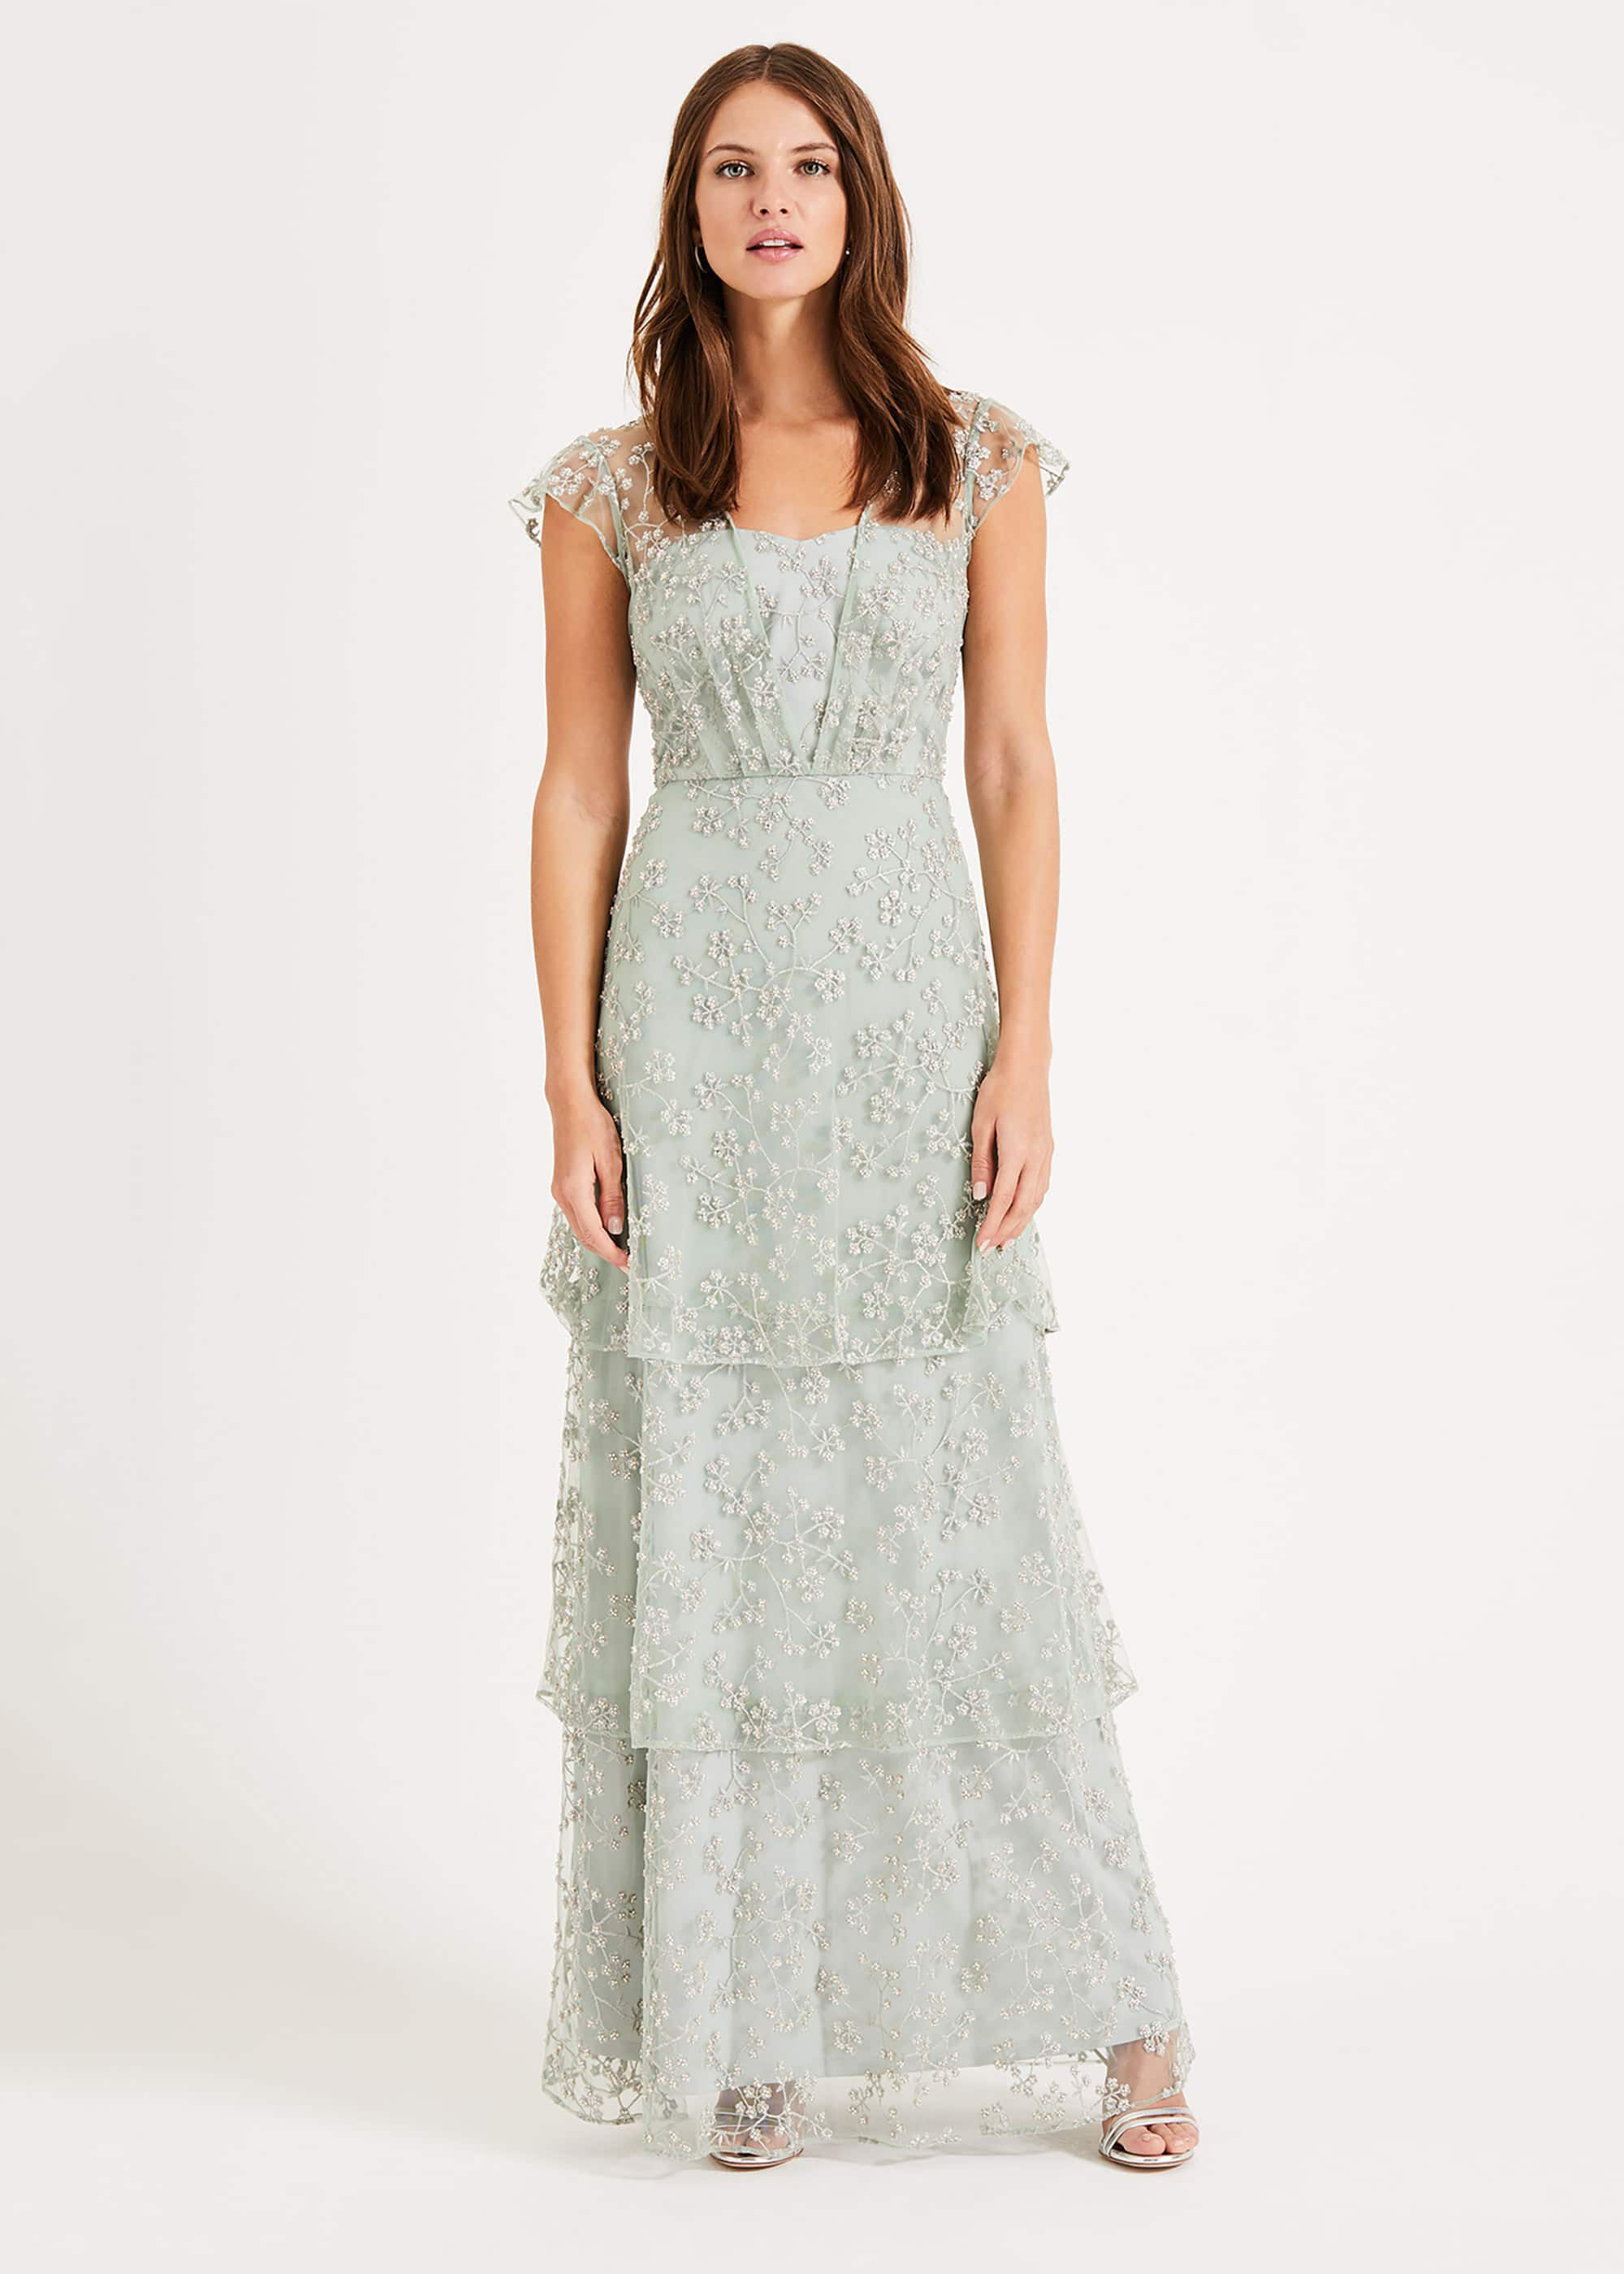 Old Fashioned Dresses | Old Dress Styles Phase Eight Rai Beaded Maxi Dress Green Maxi £295.00 AT vintagedancer.com